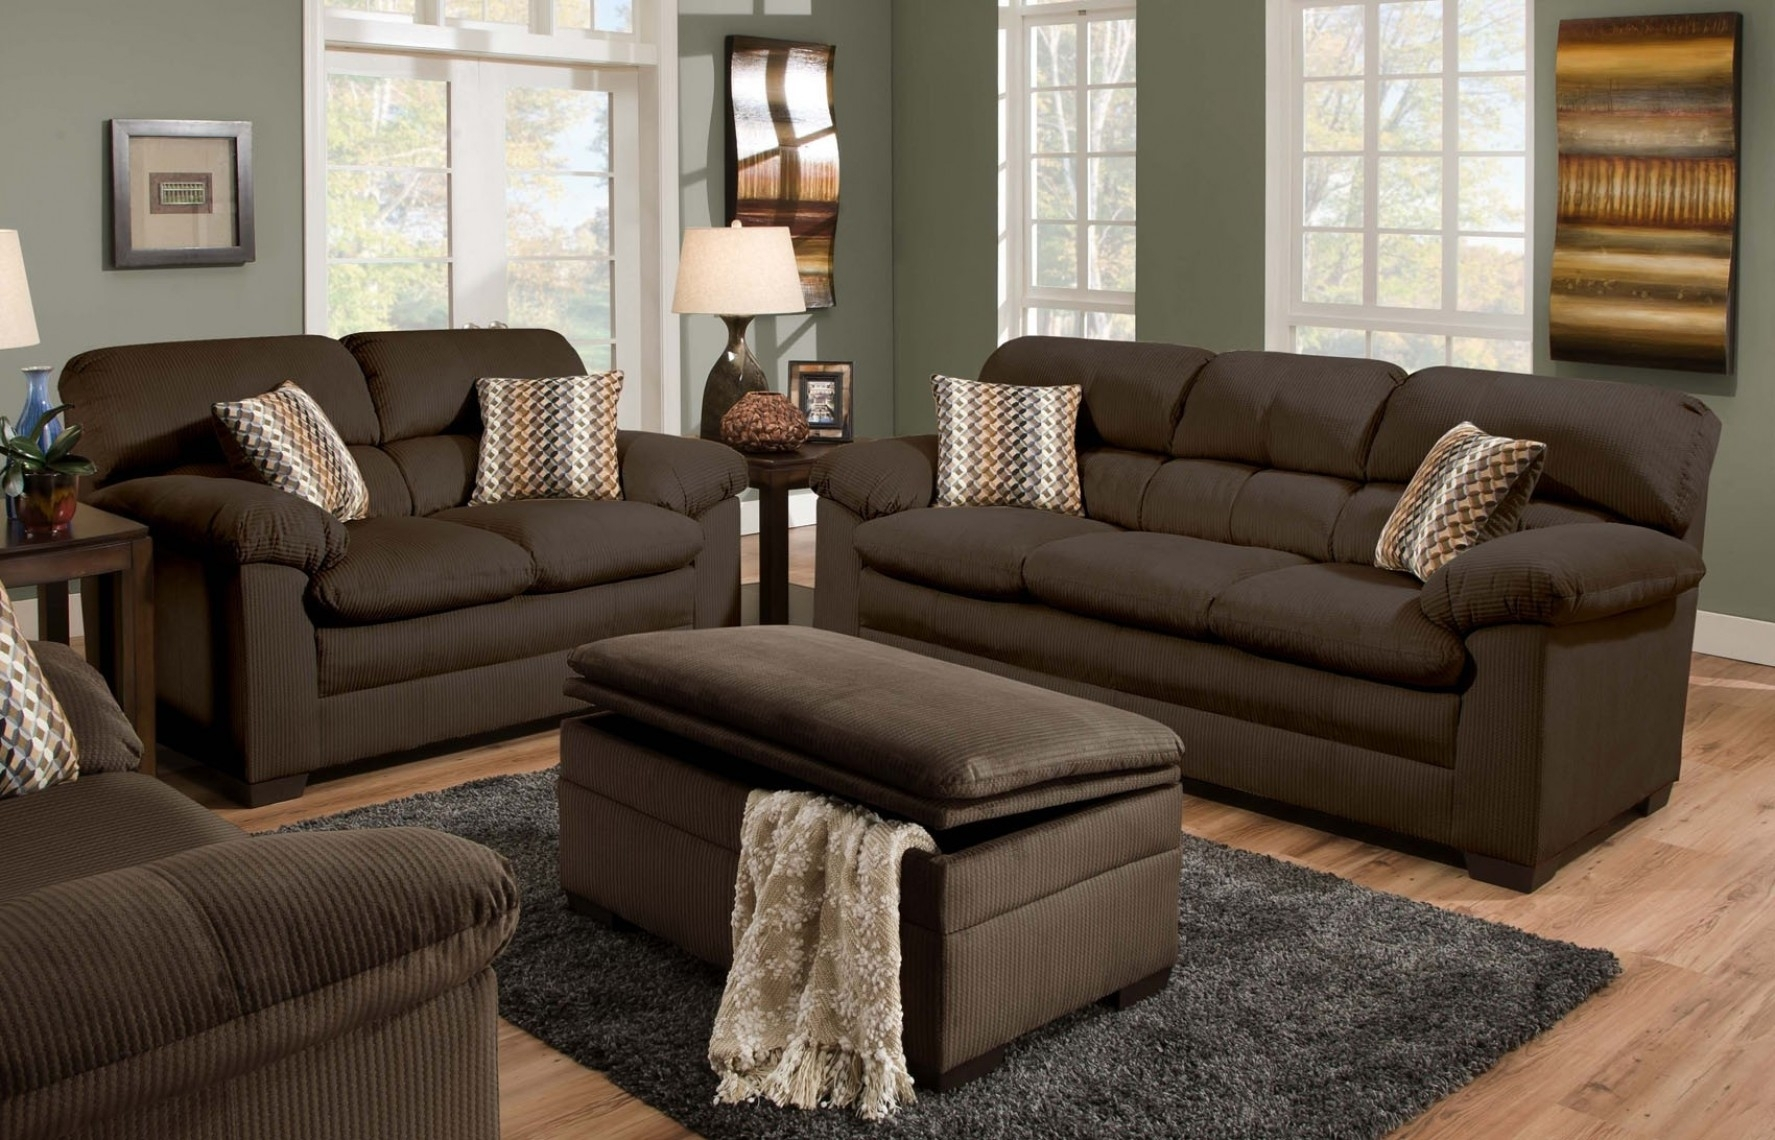 Cappuccino Sectional Sofa Set Having Pillow Arms Details Also With Sofas With Ottoman (View 5 of 10)